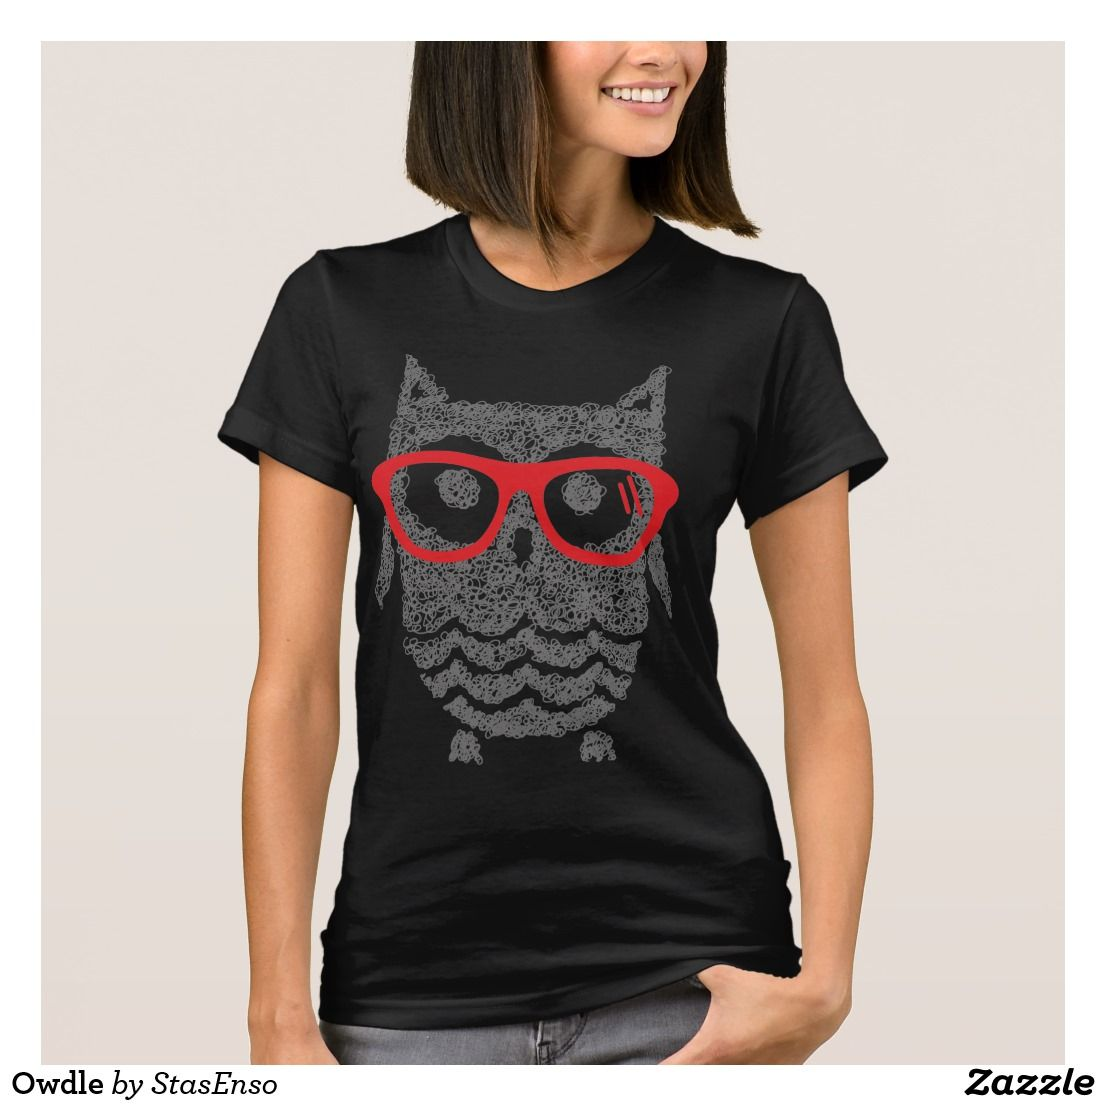 49794c202 Owdle T-Shirt   Zazzle.com   jewelry accessories and summer fashion ...